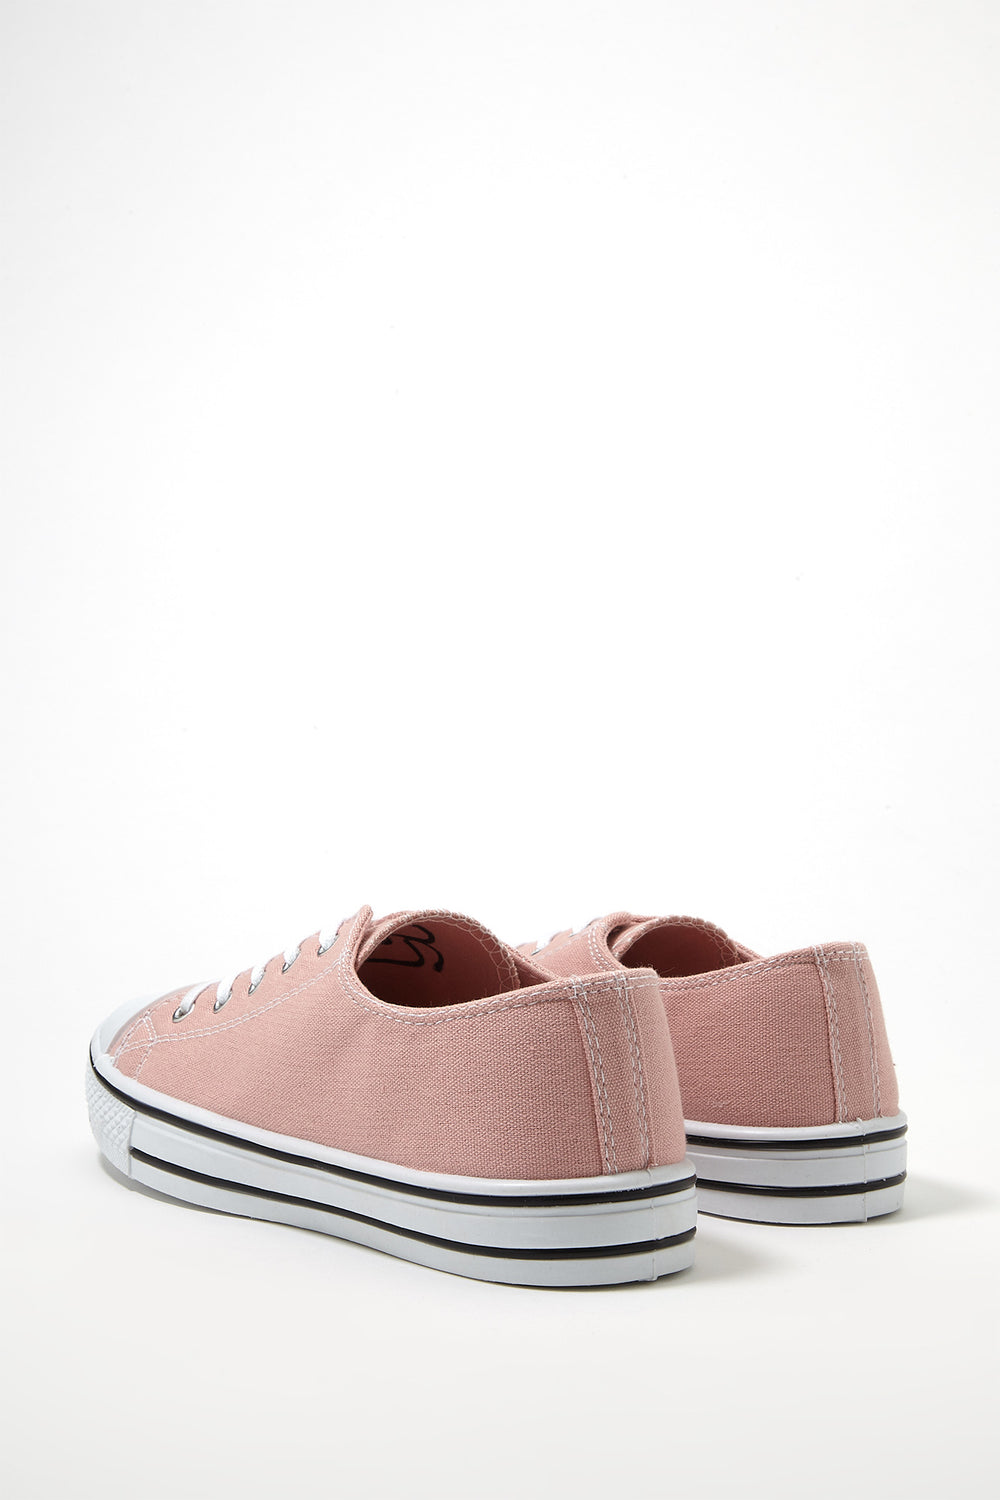 Printed Canvas Lace-Up Sneaker Light Pink